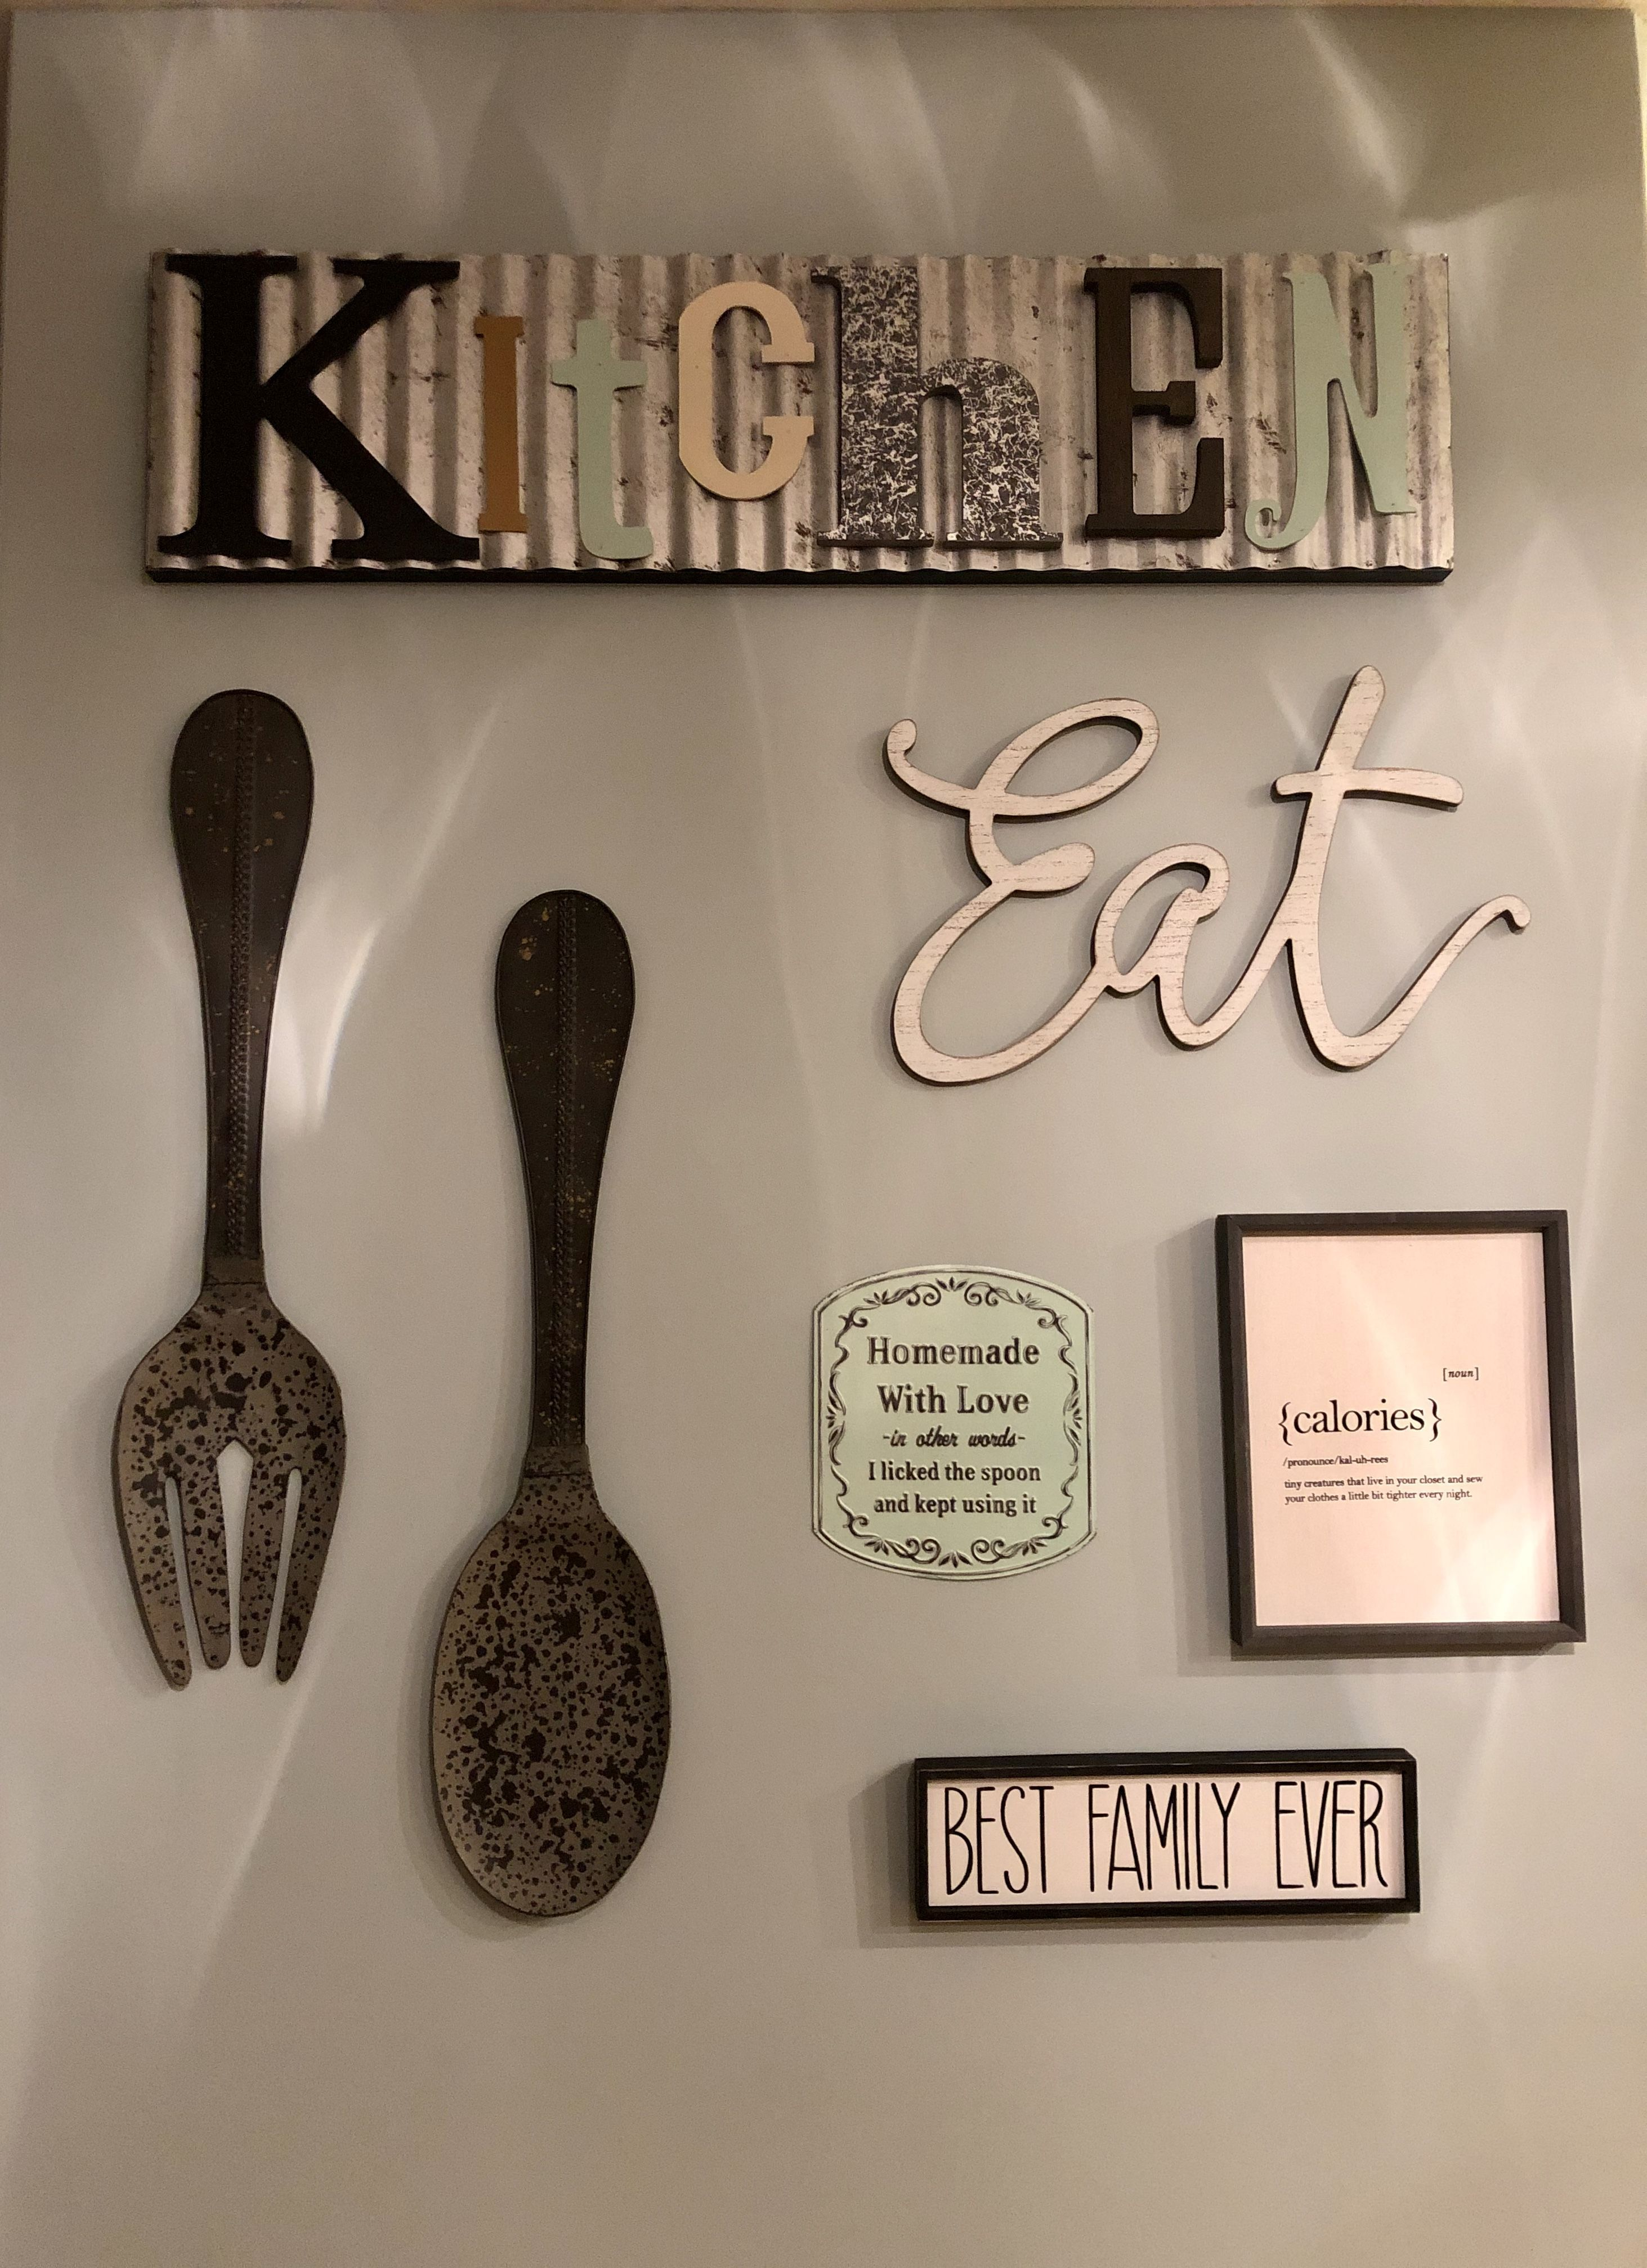 Kitchen Wall Decor Pottery Barn Fork And Spoon Mixed With Hobby Lobby Signs To Complete An Empty Hobby Lobby Wall Decor Kitchen Wall Decor Dining Wall Decor